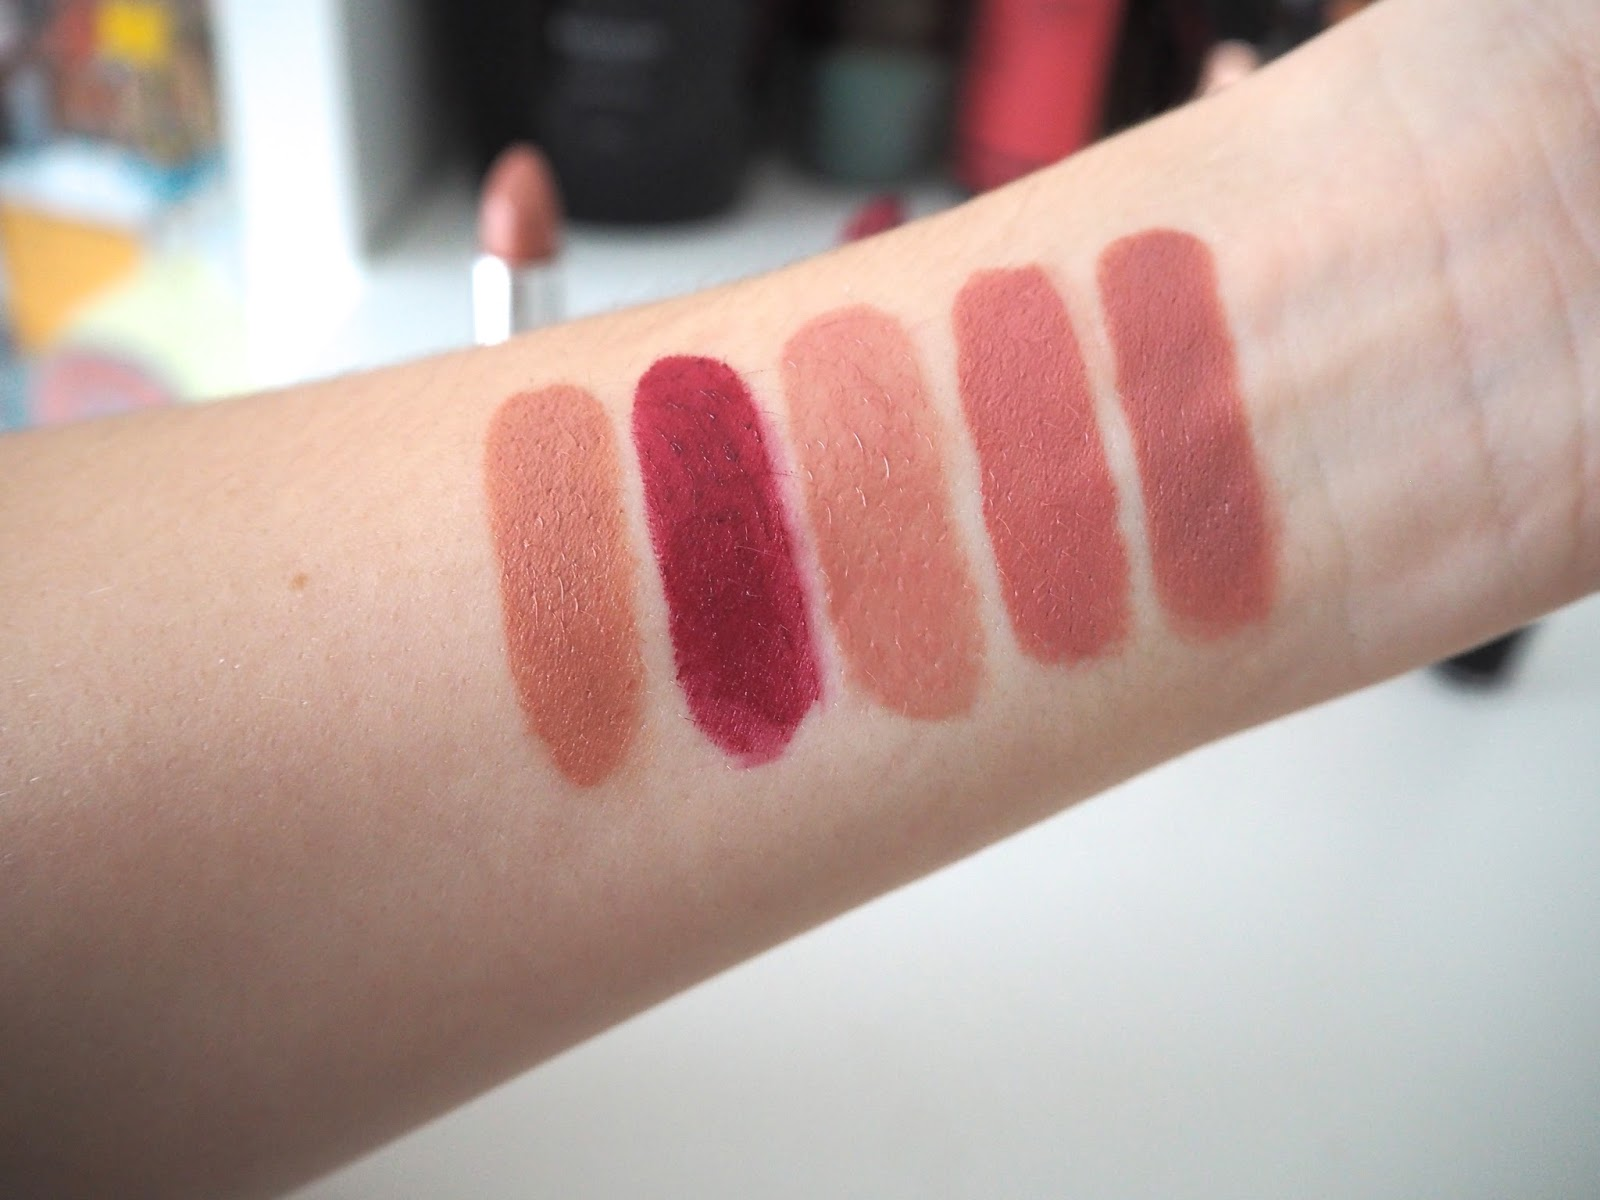 My Favourite Drugstore Lipsticks, best drugstore lipsticks, nude, bold, pink, red, rimmel kate moss, 43, 107, catrice luminous lips lipstick, h&m beauty, hm, seashell, wet 'n wild bare it all, megalast lipstick, swatches